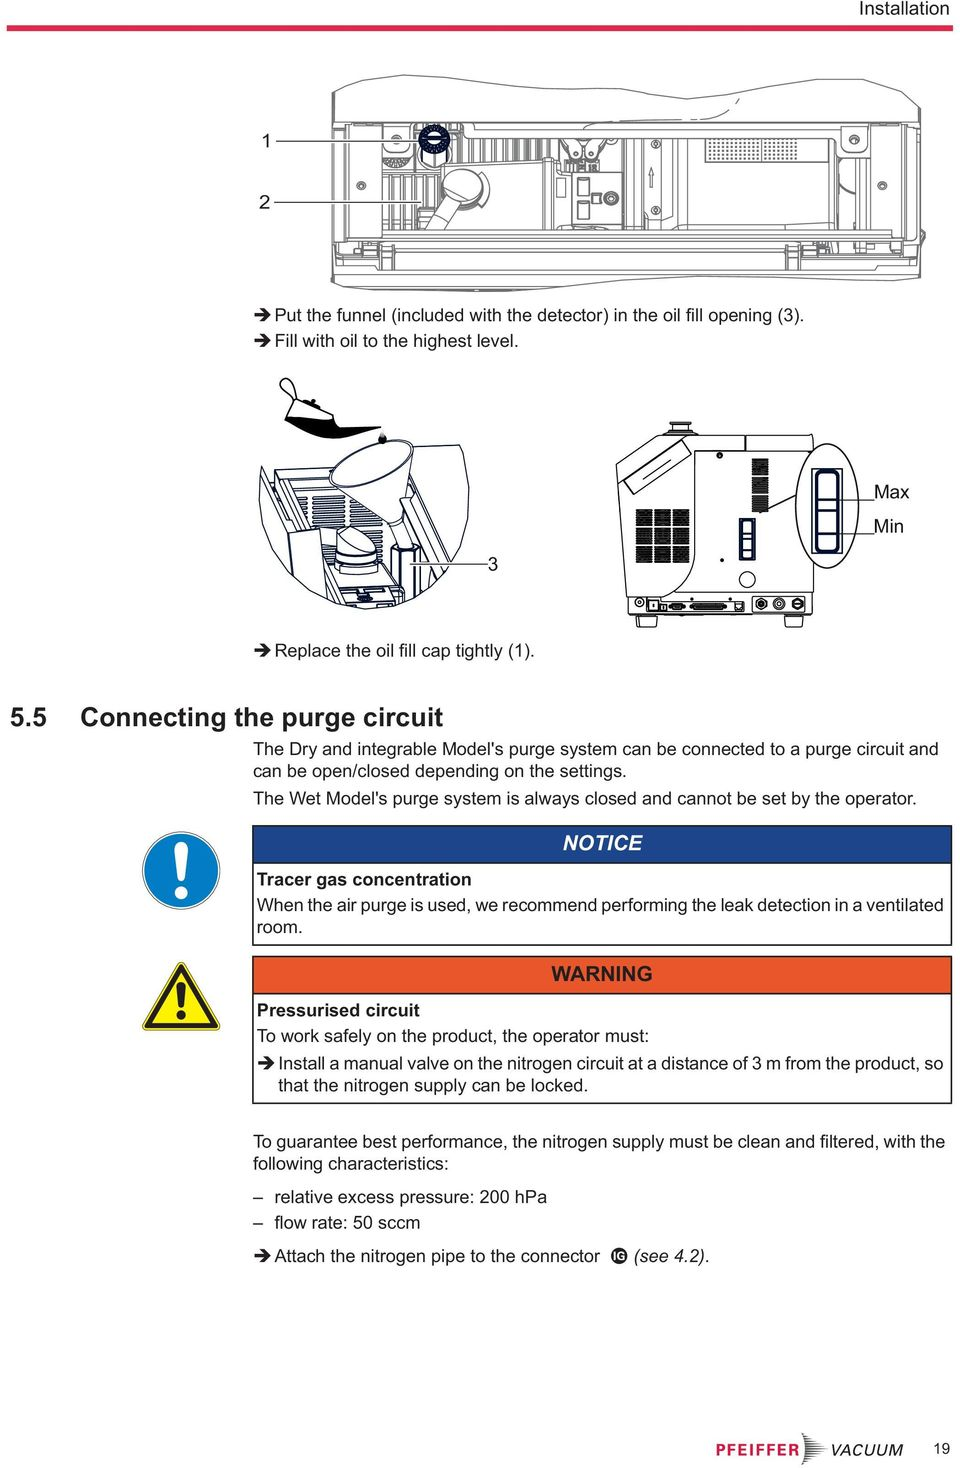 Translation Of The Original Instructions Asm 340 Leak Detector Alarm Panel Wiring Diagram Wet Models Purge System Is Always Closed And Cannot Be Set By Operator